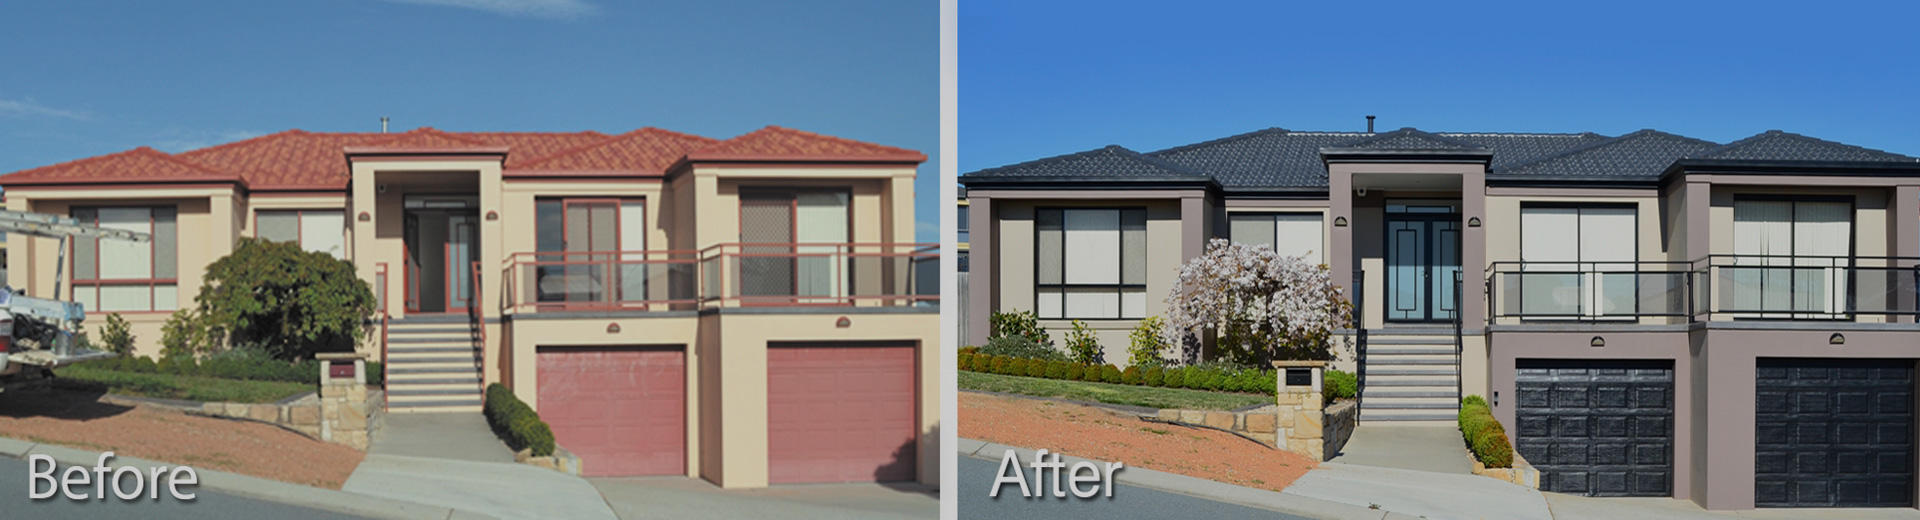 residential-painting-canberra